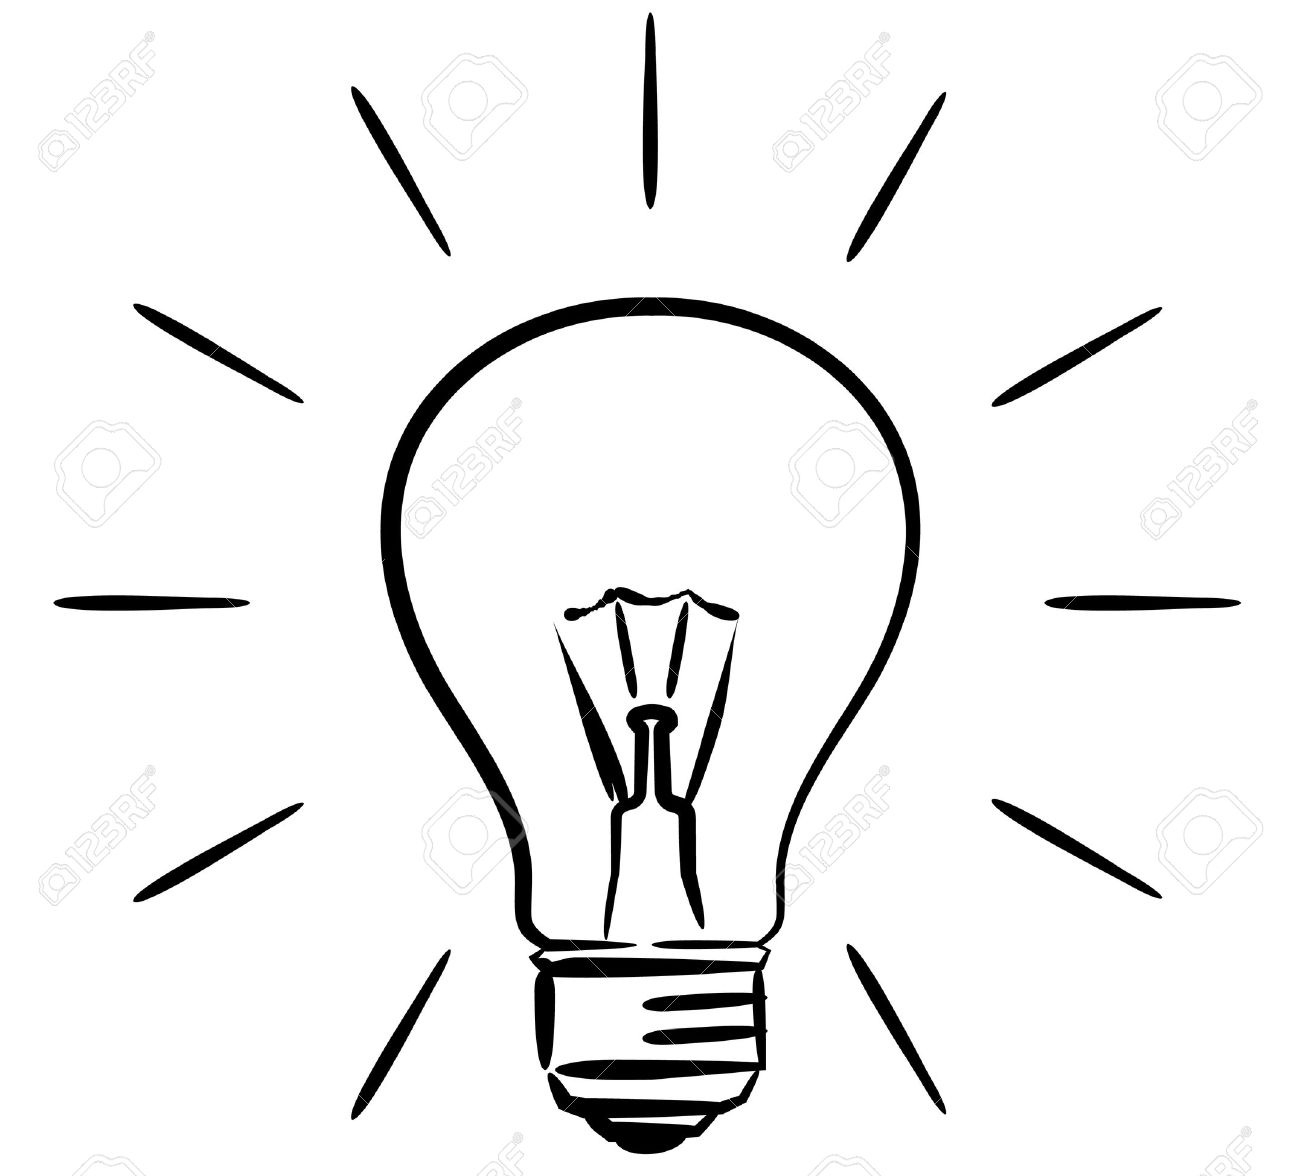 Light Bulb Clipart Black And White Images On Page 0.